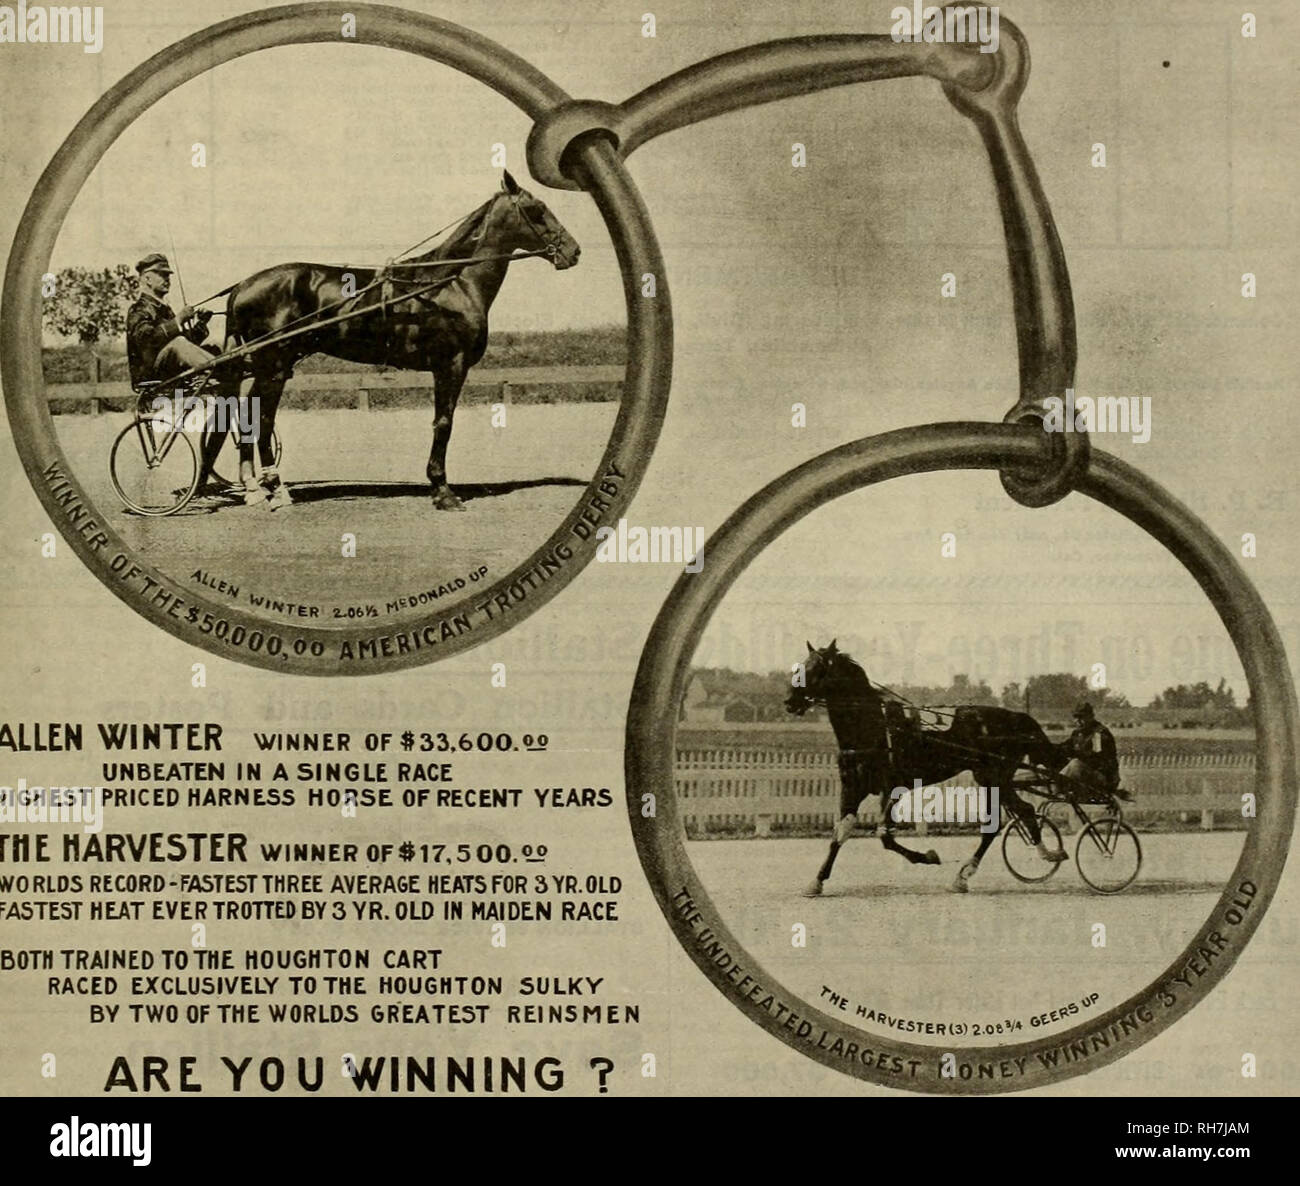 ". Breeder and sportsman. Horses. Saturday, December 26, 190S.] THE BREEDER AND SPORTSMAN m n a u; b n i y «ii,me <* A BIT THE BEST •^. ALLEN WINTER winner of $33,600. oj> UNBEATEN IN A SINGLE RACE HIGHEST PRICED HARNESS HORSE OF RECENT YEARS THE HARVESTER winnerof$i7,soo.°° WORLDS RECORD-FASTEST THREE AVERAGE HEATS FOR 3YR.0LD FASTEST HEAT EVER TROTTED BY 3 YR. OLD IN MAIDEN RACE BOTH TRAINED TO THE HOUGHTON CART RACED EXCLUSIVELY TO THE HOUGHTON SULKY BY TWO OF THE WORLDS GREATEST REIN5MEN ARE YOU WINNING ? REMEMBER: we are the sole originators of the ""aluminum lined'"" wood ri - Stock Image"